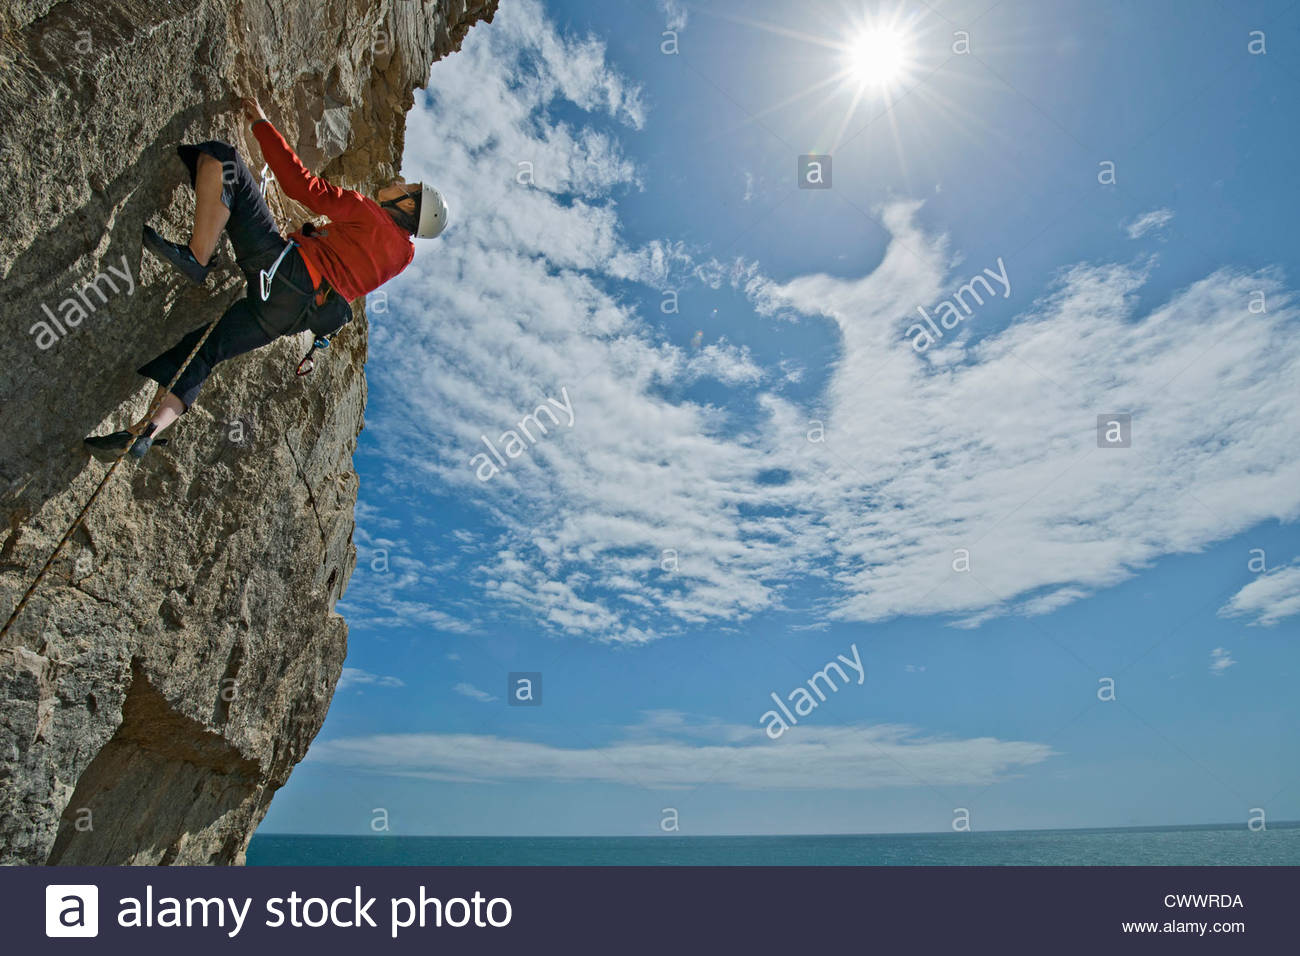 Climber scaling steep cliff face Photo Stock